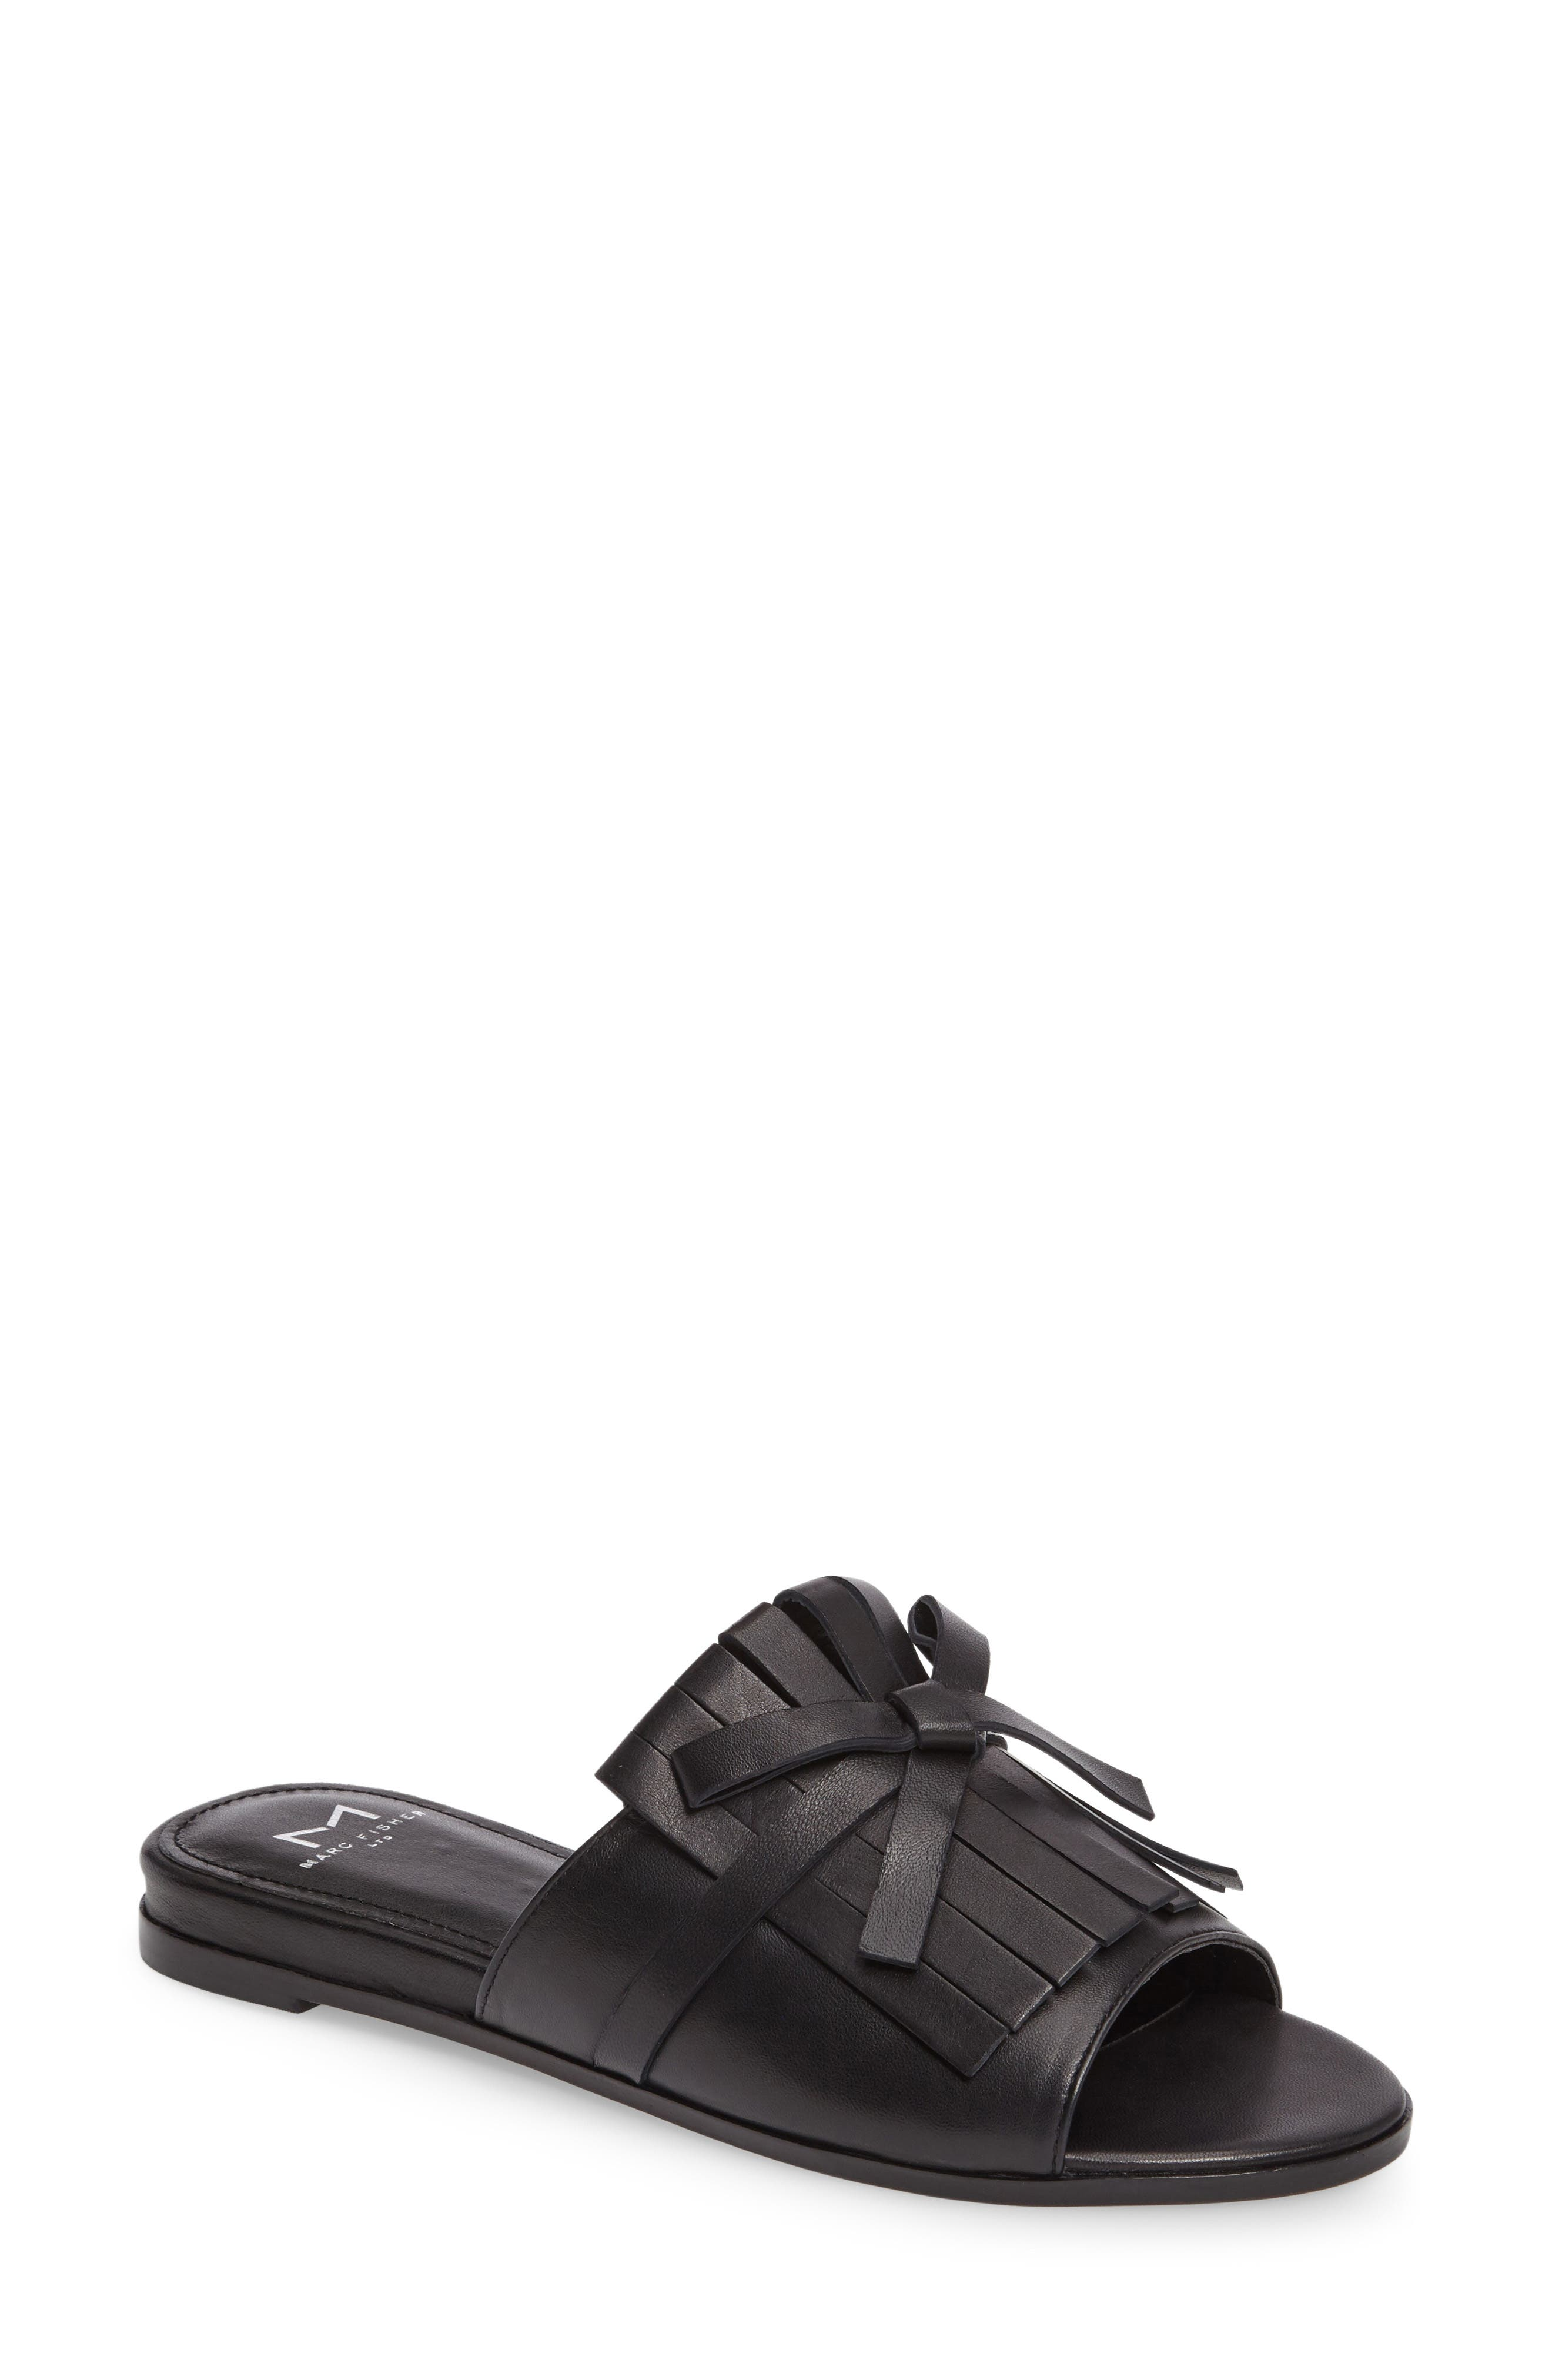 Whitley Slide Sandal,                             Alternate thumbnail 2, color,                             001